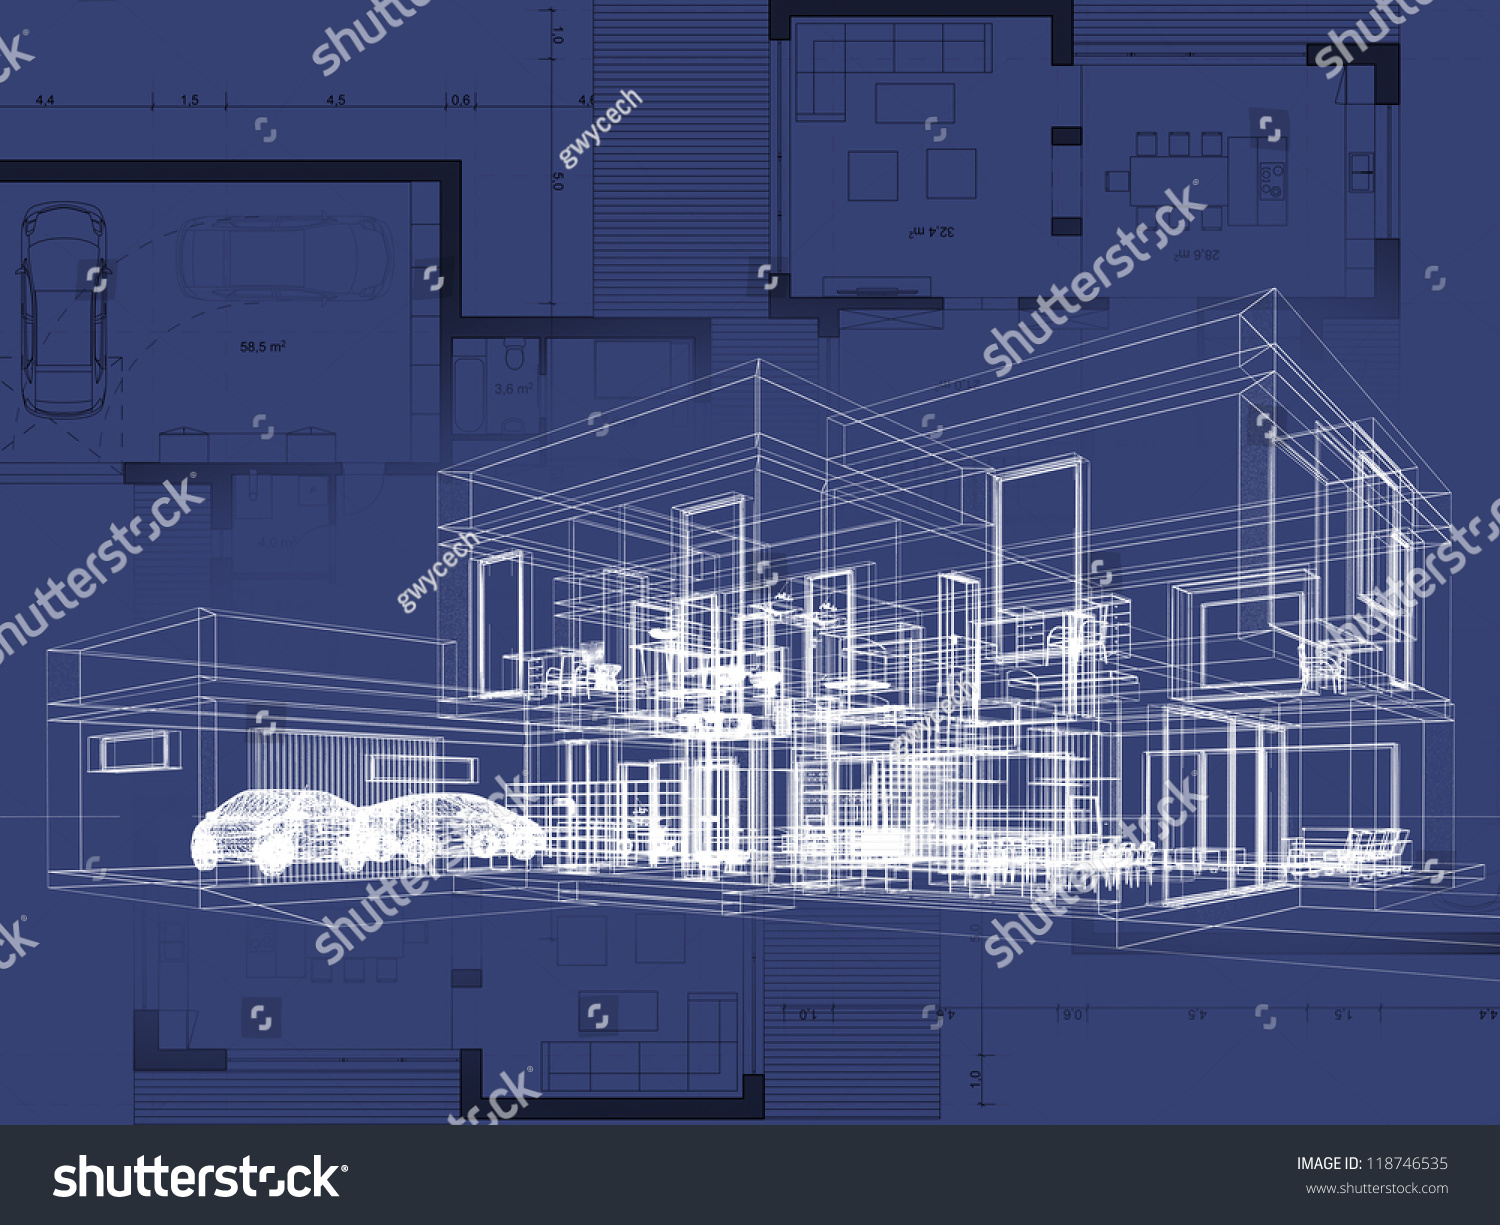 Blueprint Architecture Plan And Perspective Drawing Of